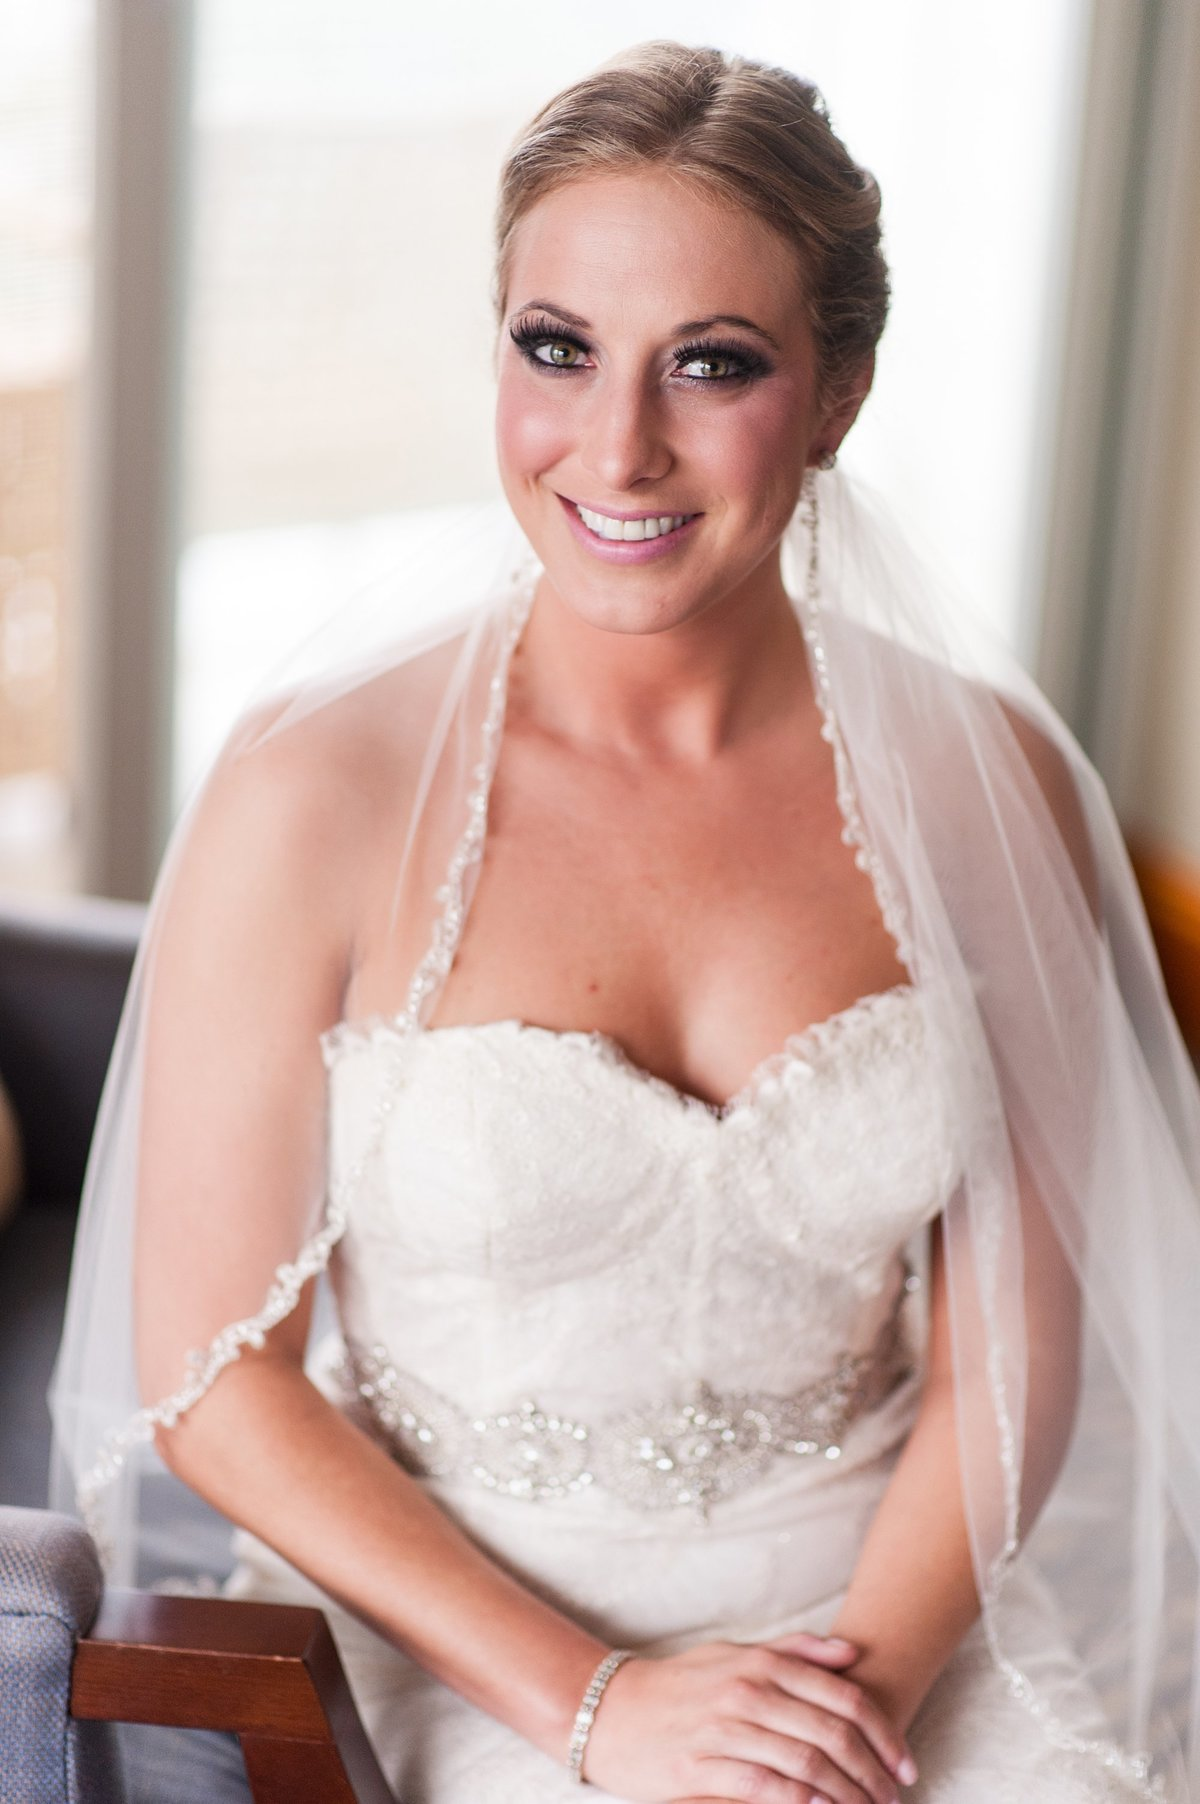 Amber-Kay-Richmond-Wedding-Photography_0125